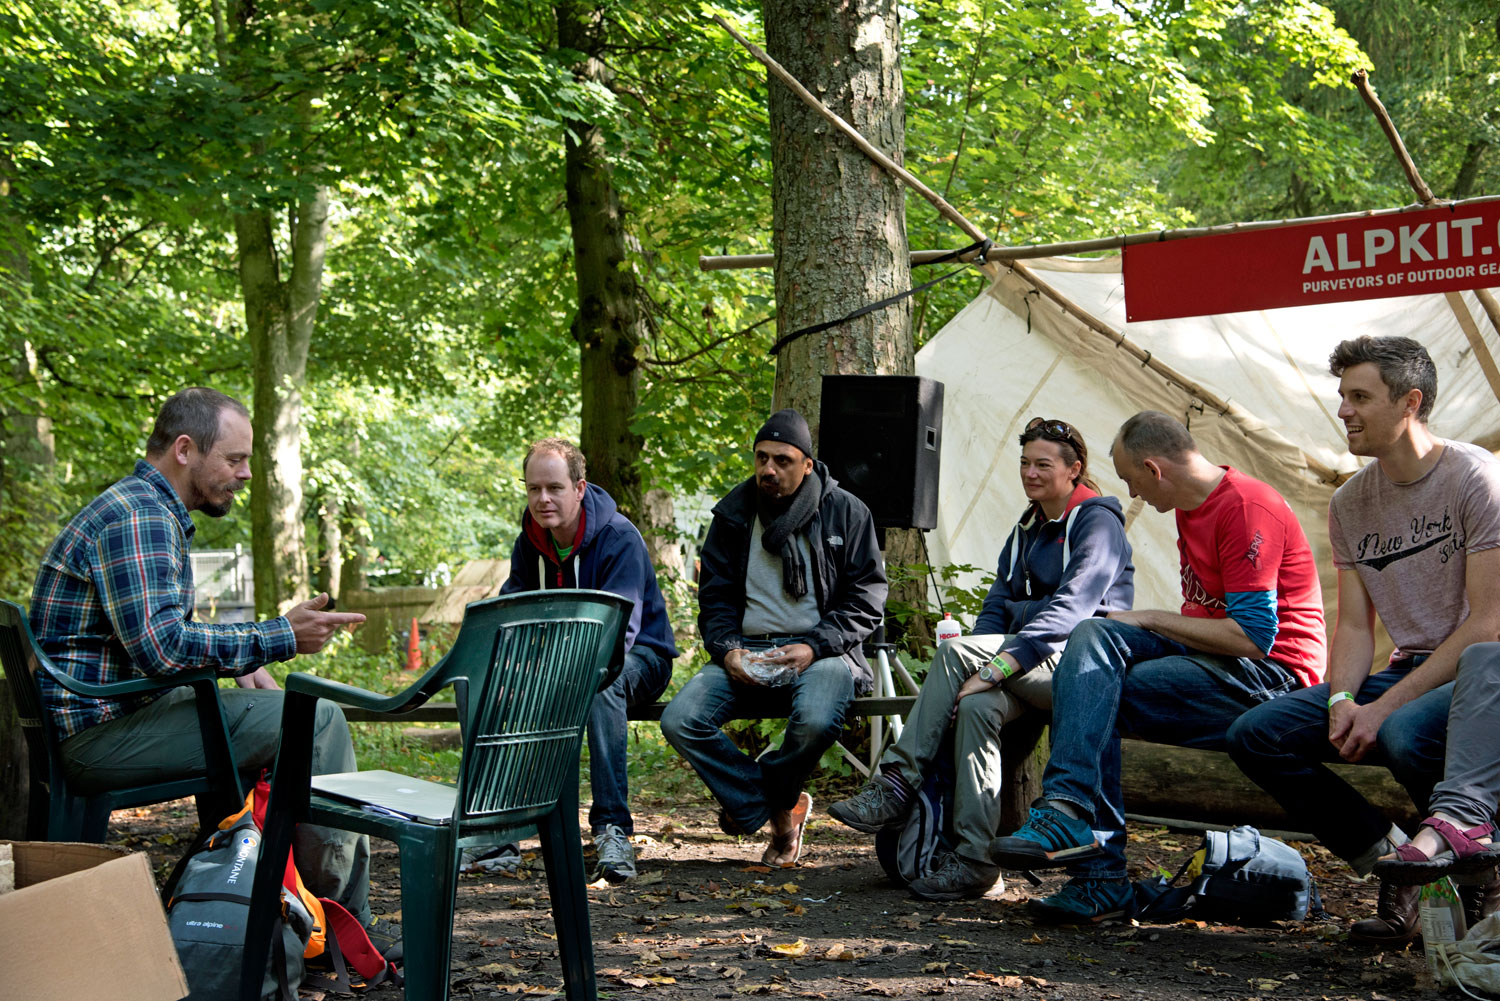 People at a class during the Alpkit Big Shakeout 2015